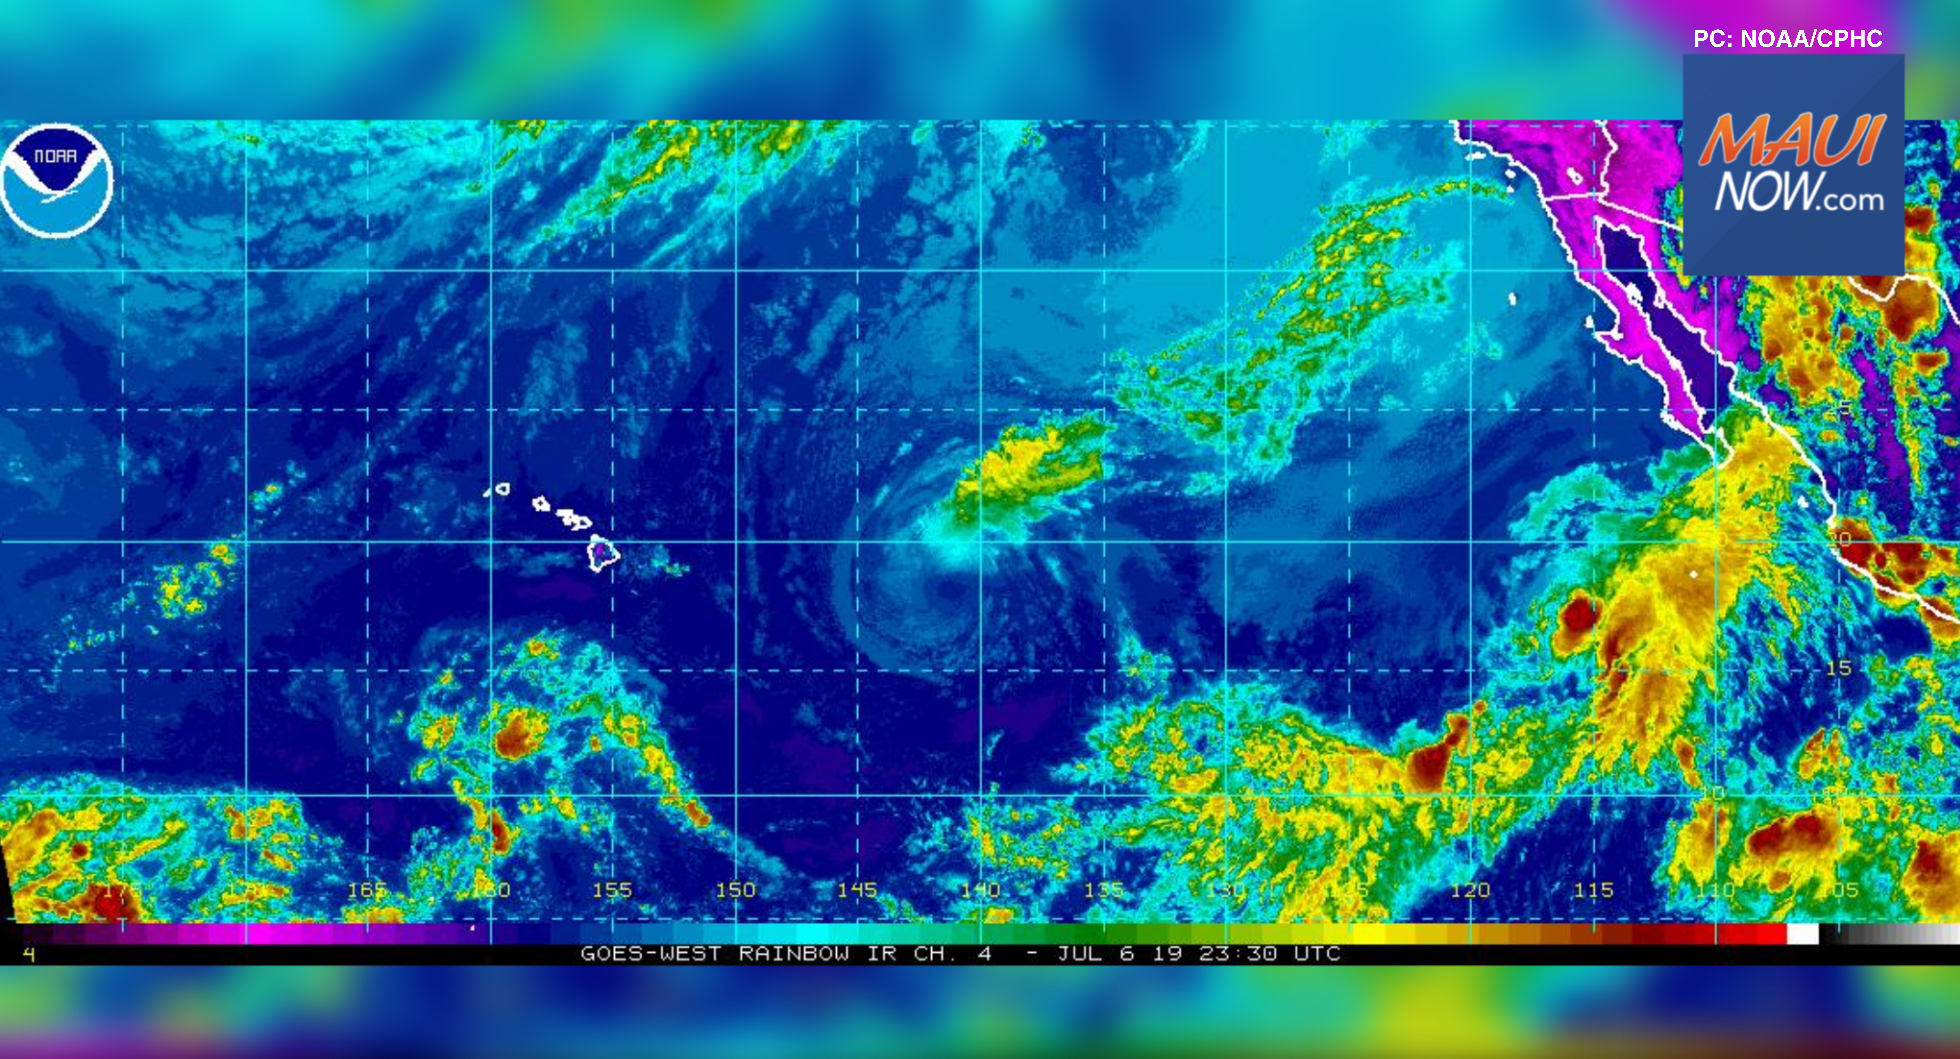 Barbara Weakening, Residents Urged to Remain Vigilant